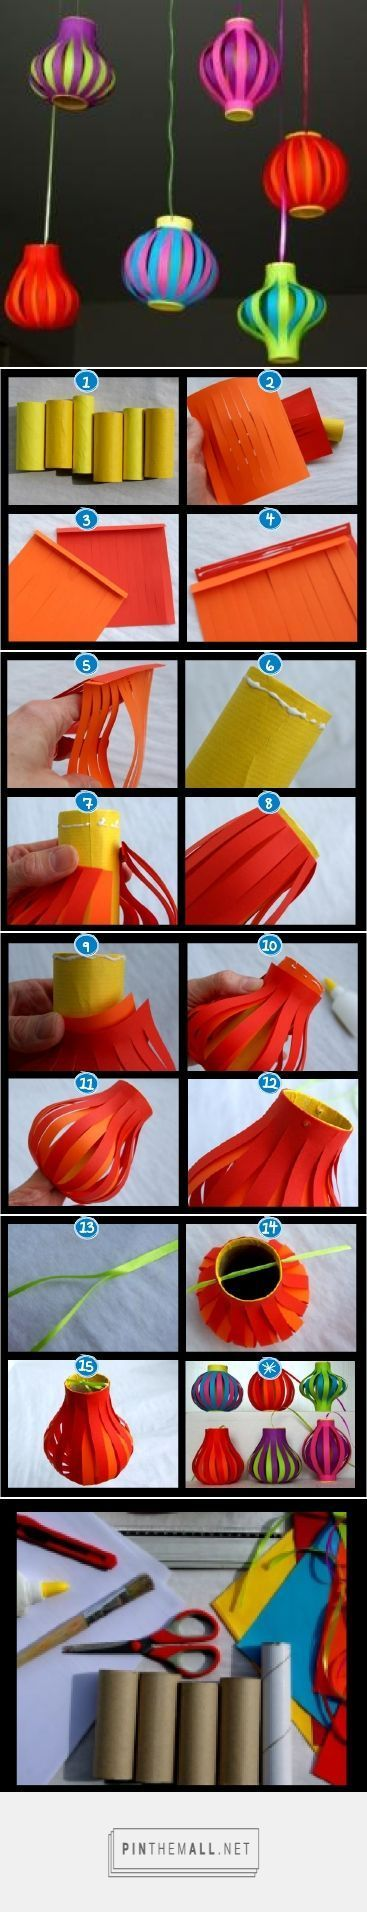 best 25 origami lantern ideas on pinterest origami balloon diy origami and origami paper folding. Black Bedroom Furniture Sets. Home Design Ideas